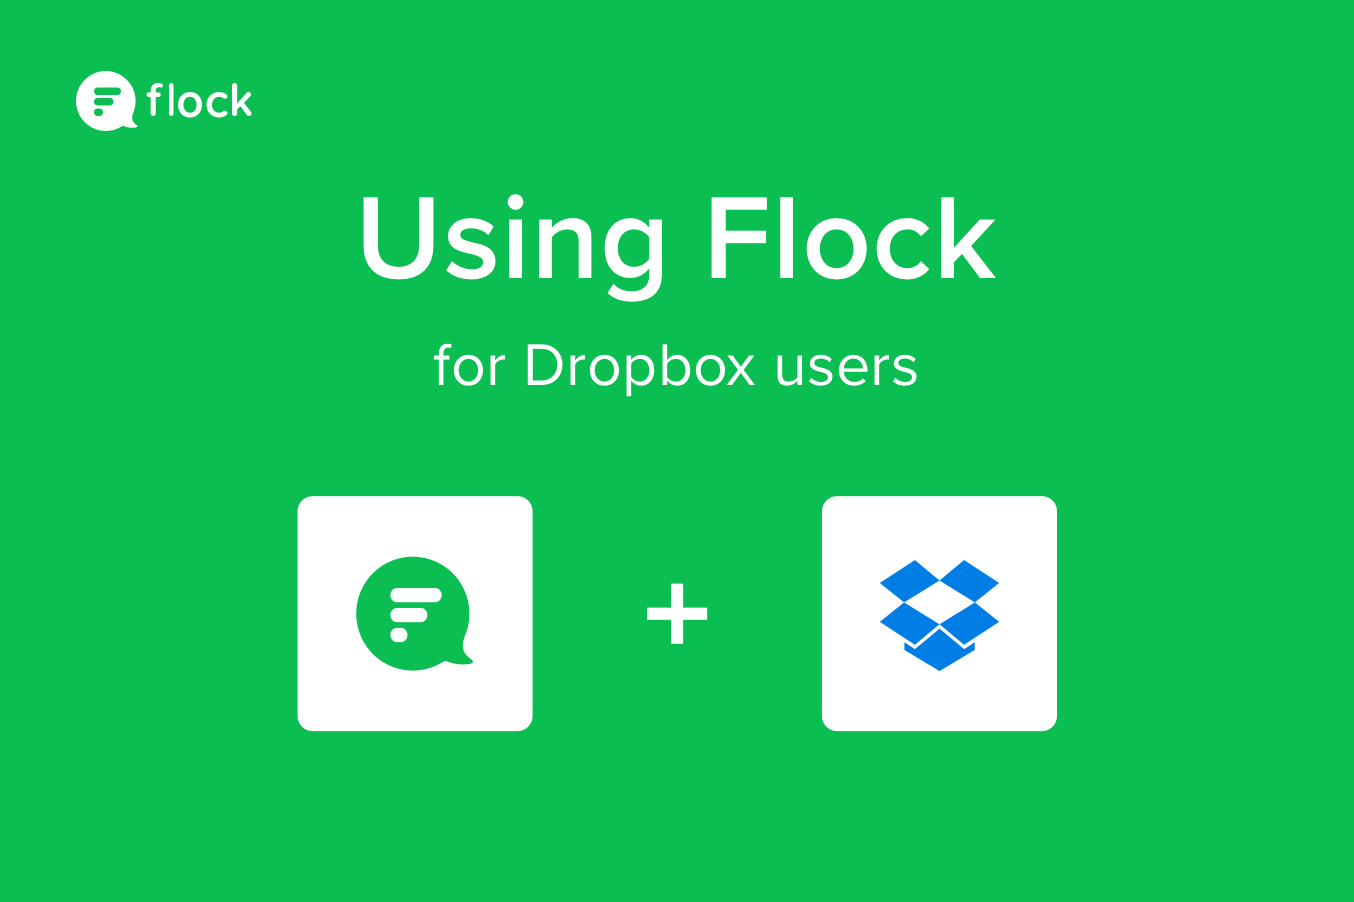 Bring your files and conversations together with Dropbox and Flock